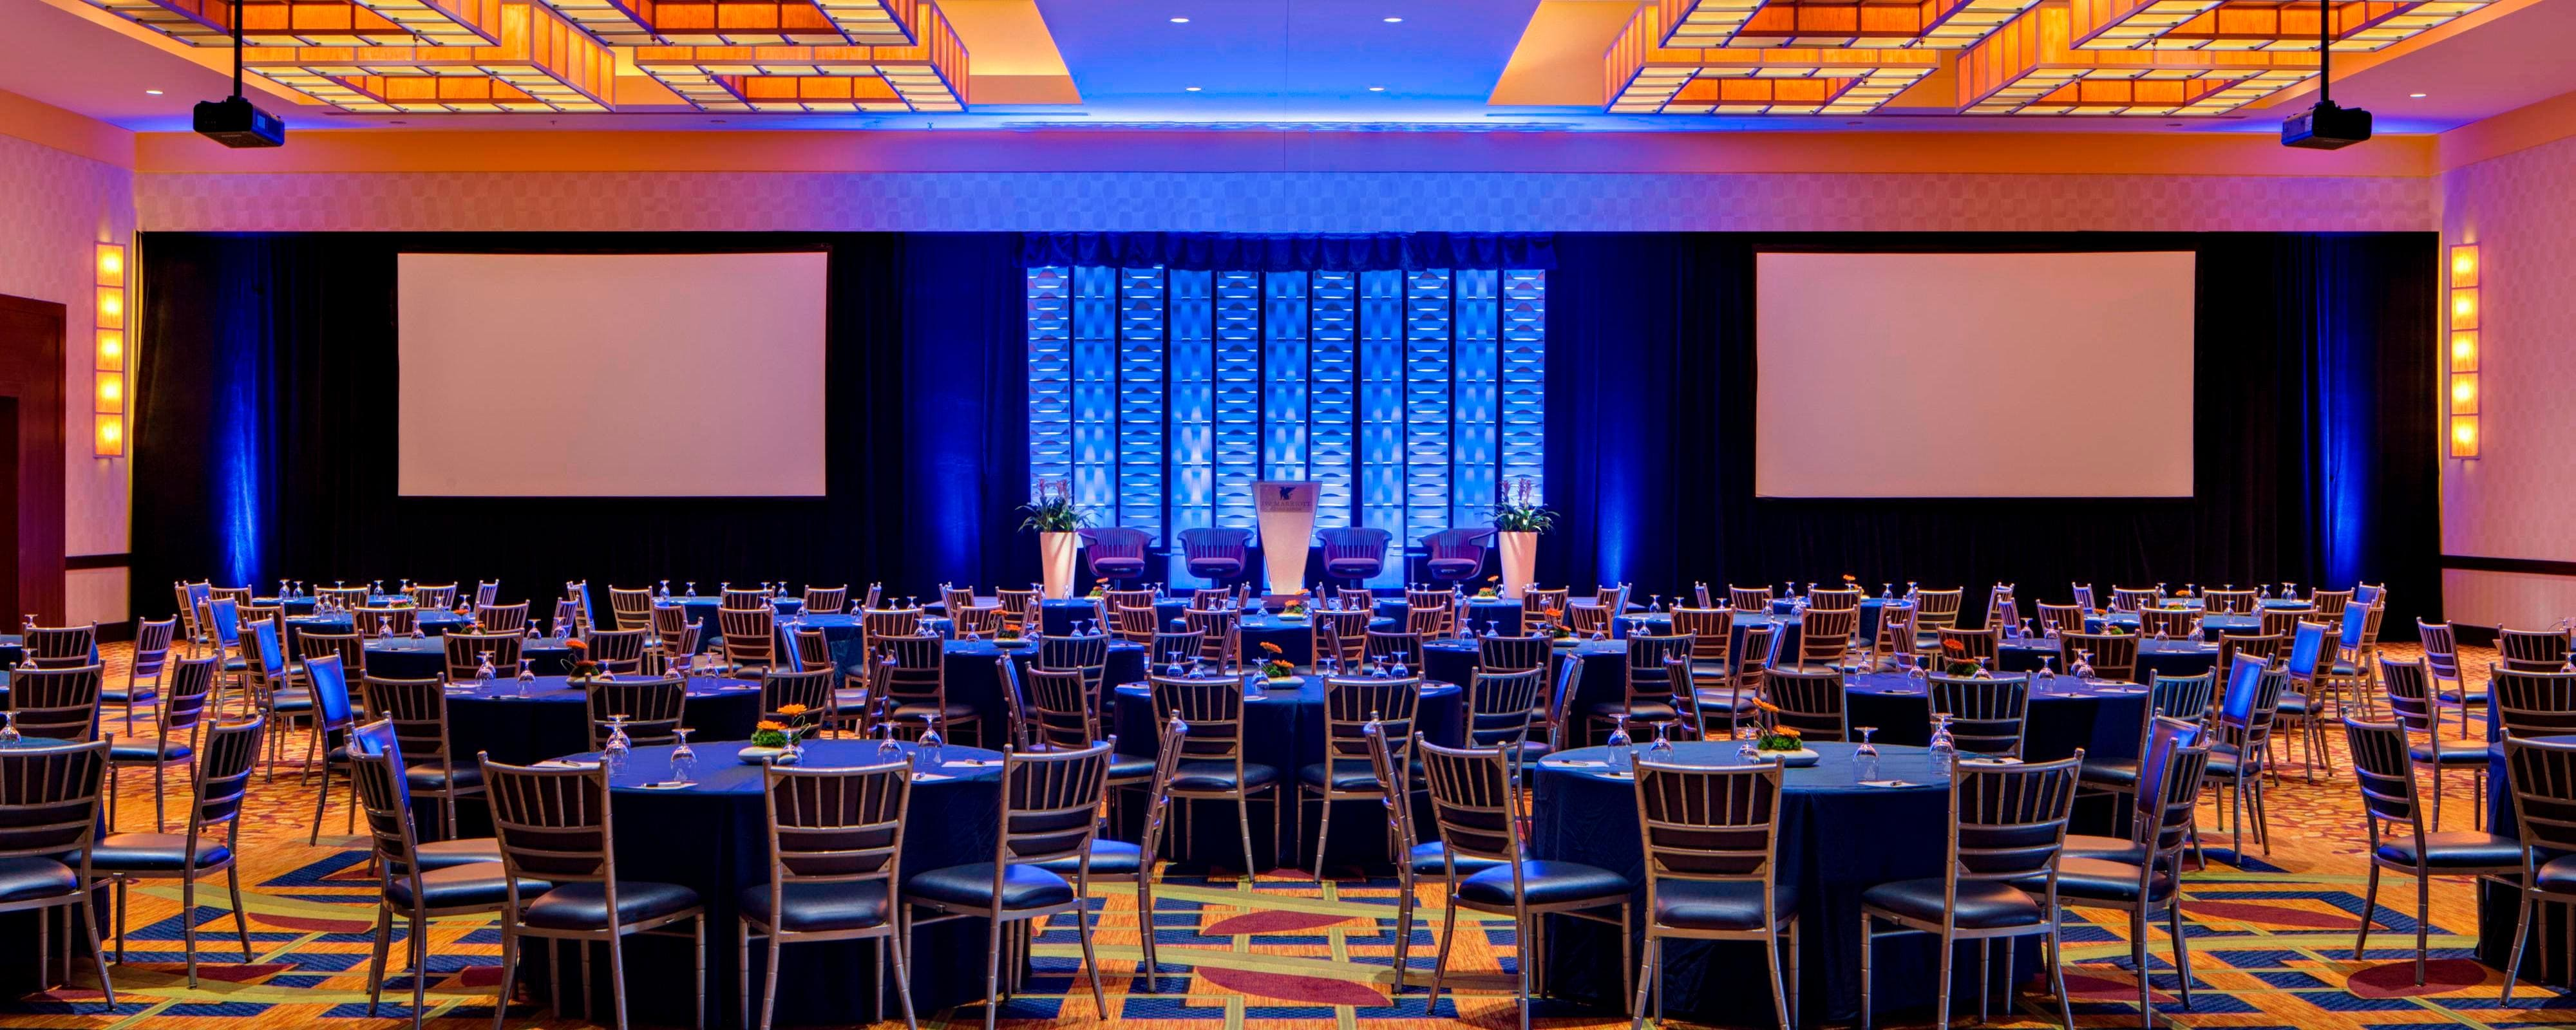 Meeting Space & Event Venue in Grand Rapids